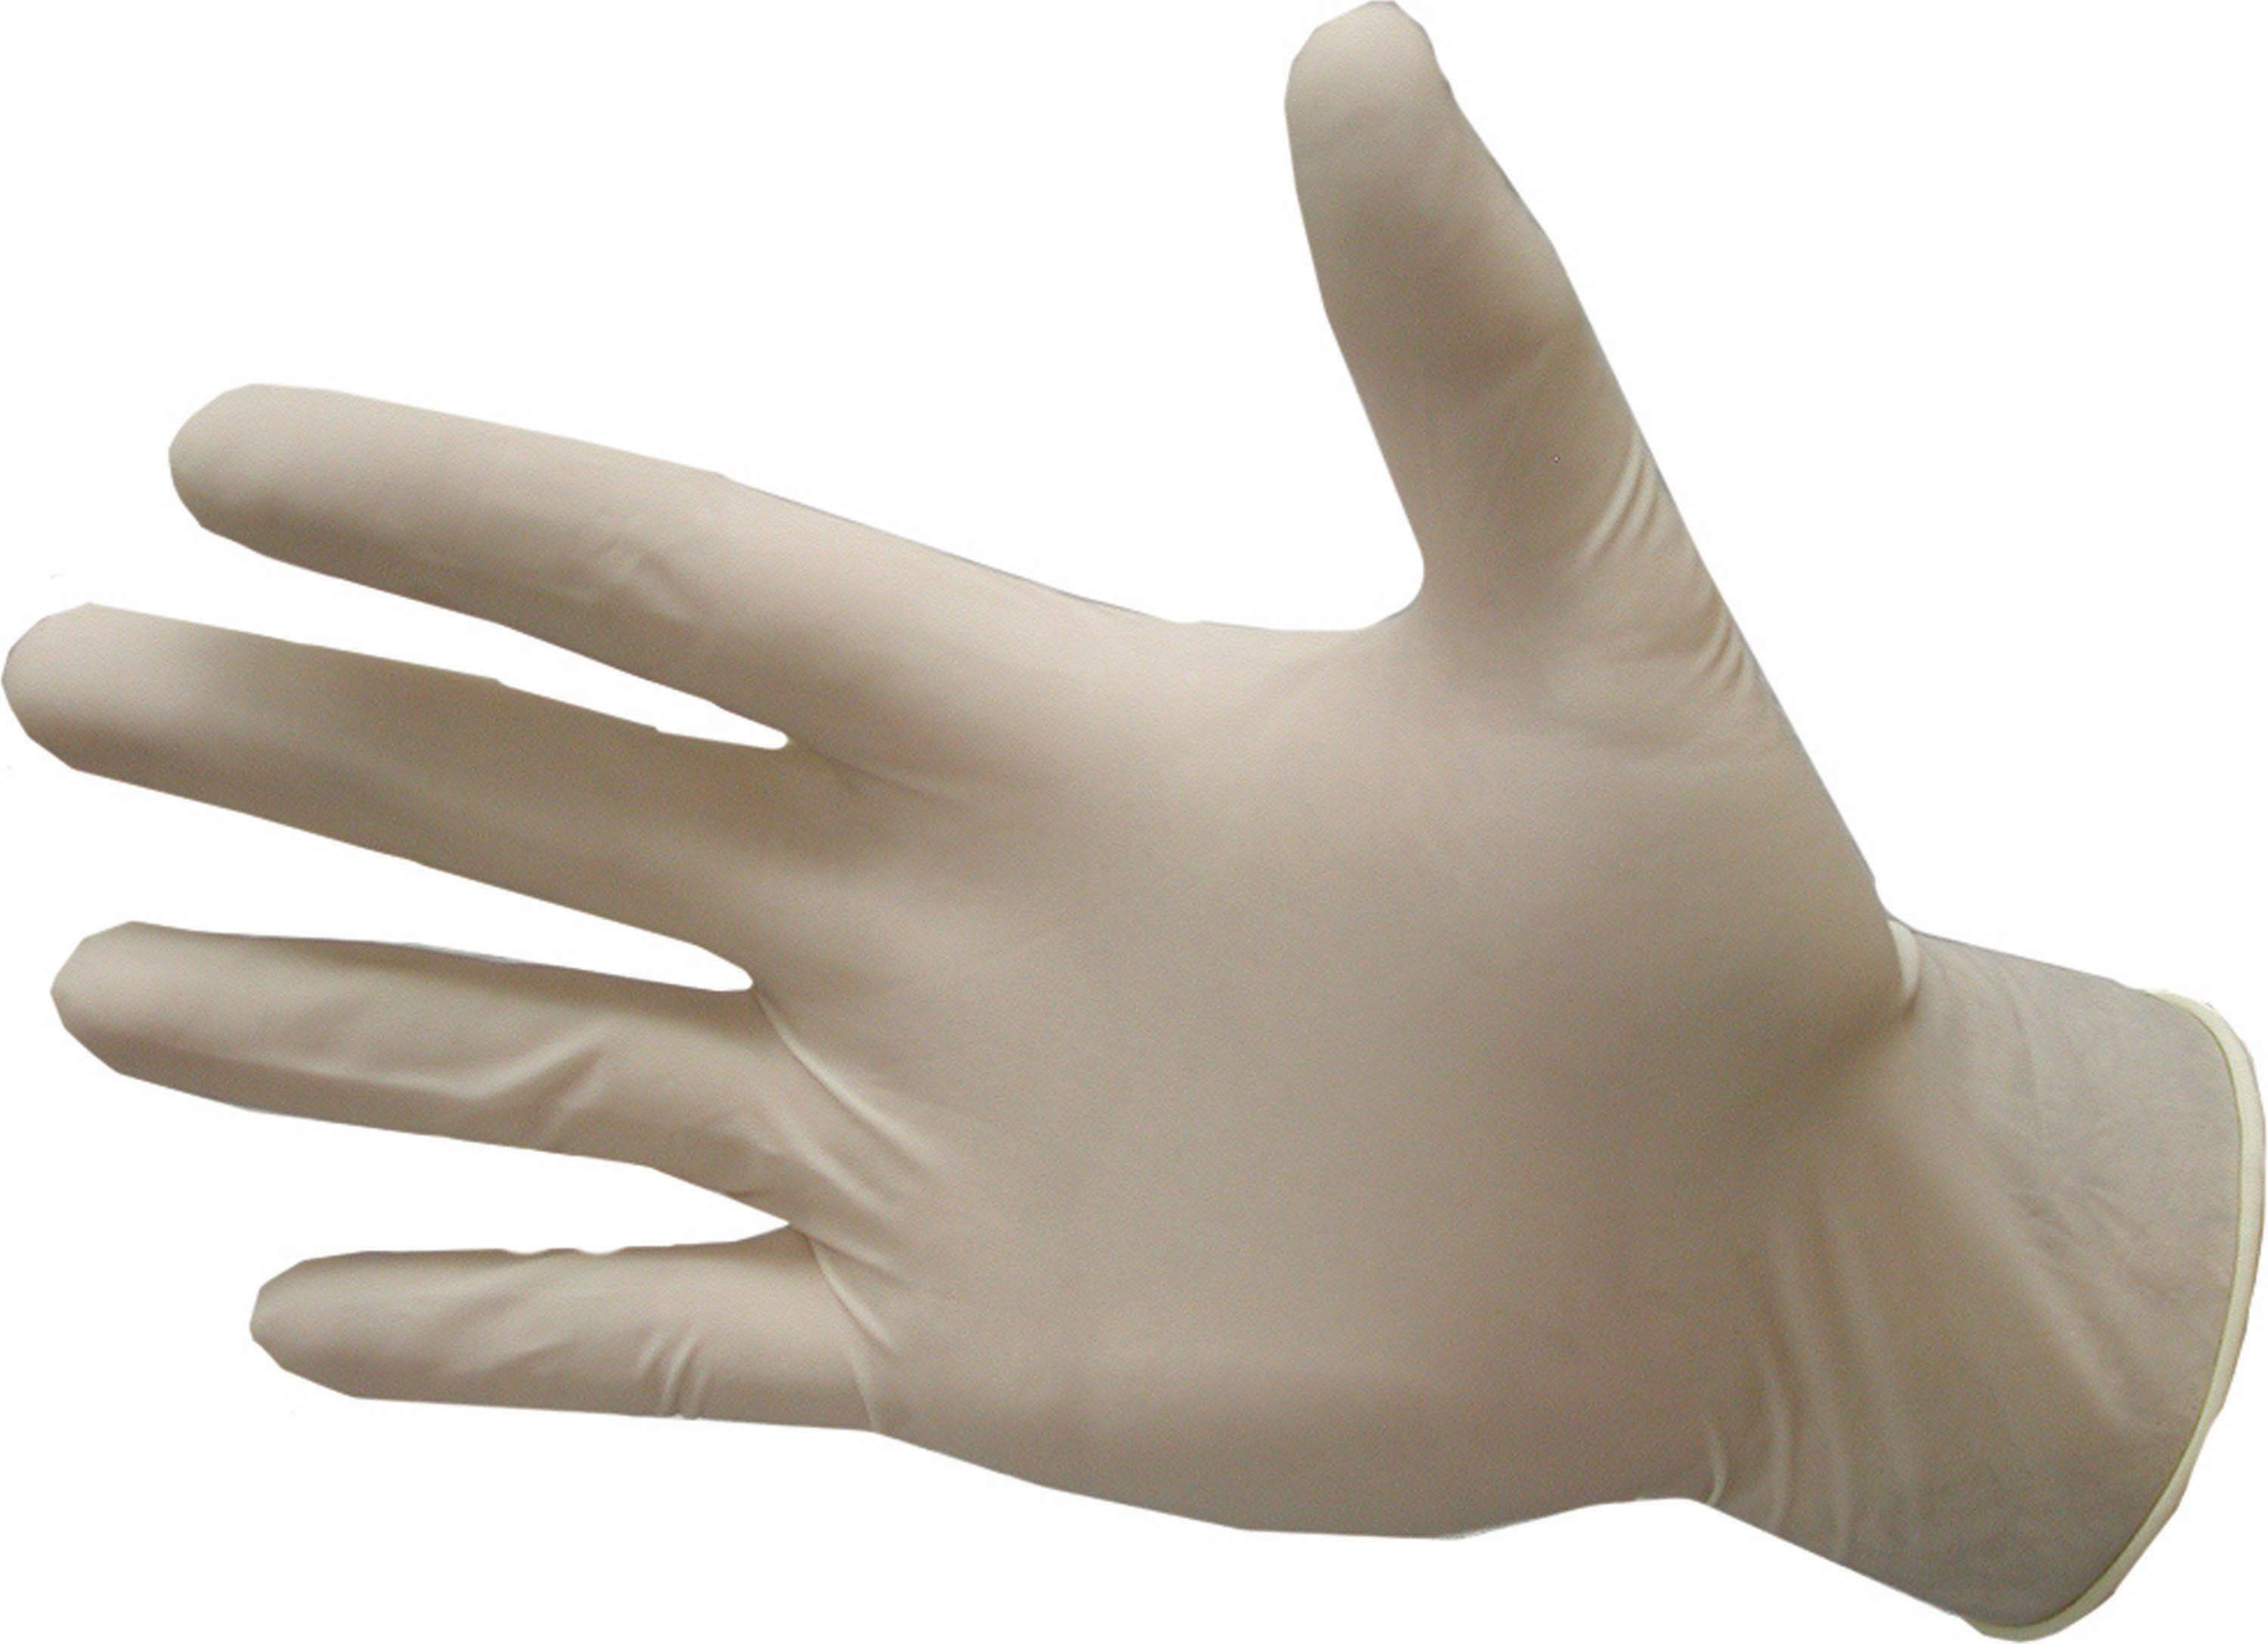 943f8cf42acd8 Neogen Glove And Insect D-Ag-tek Latex Glove Pf- White Small ...